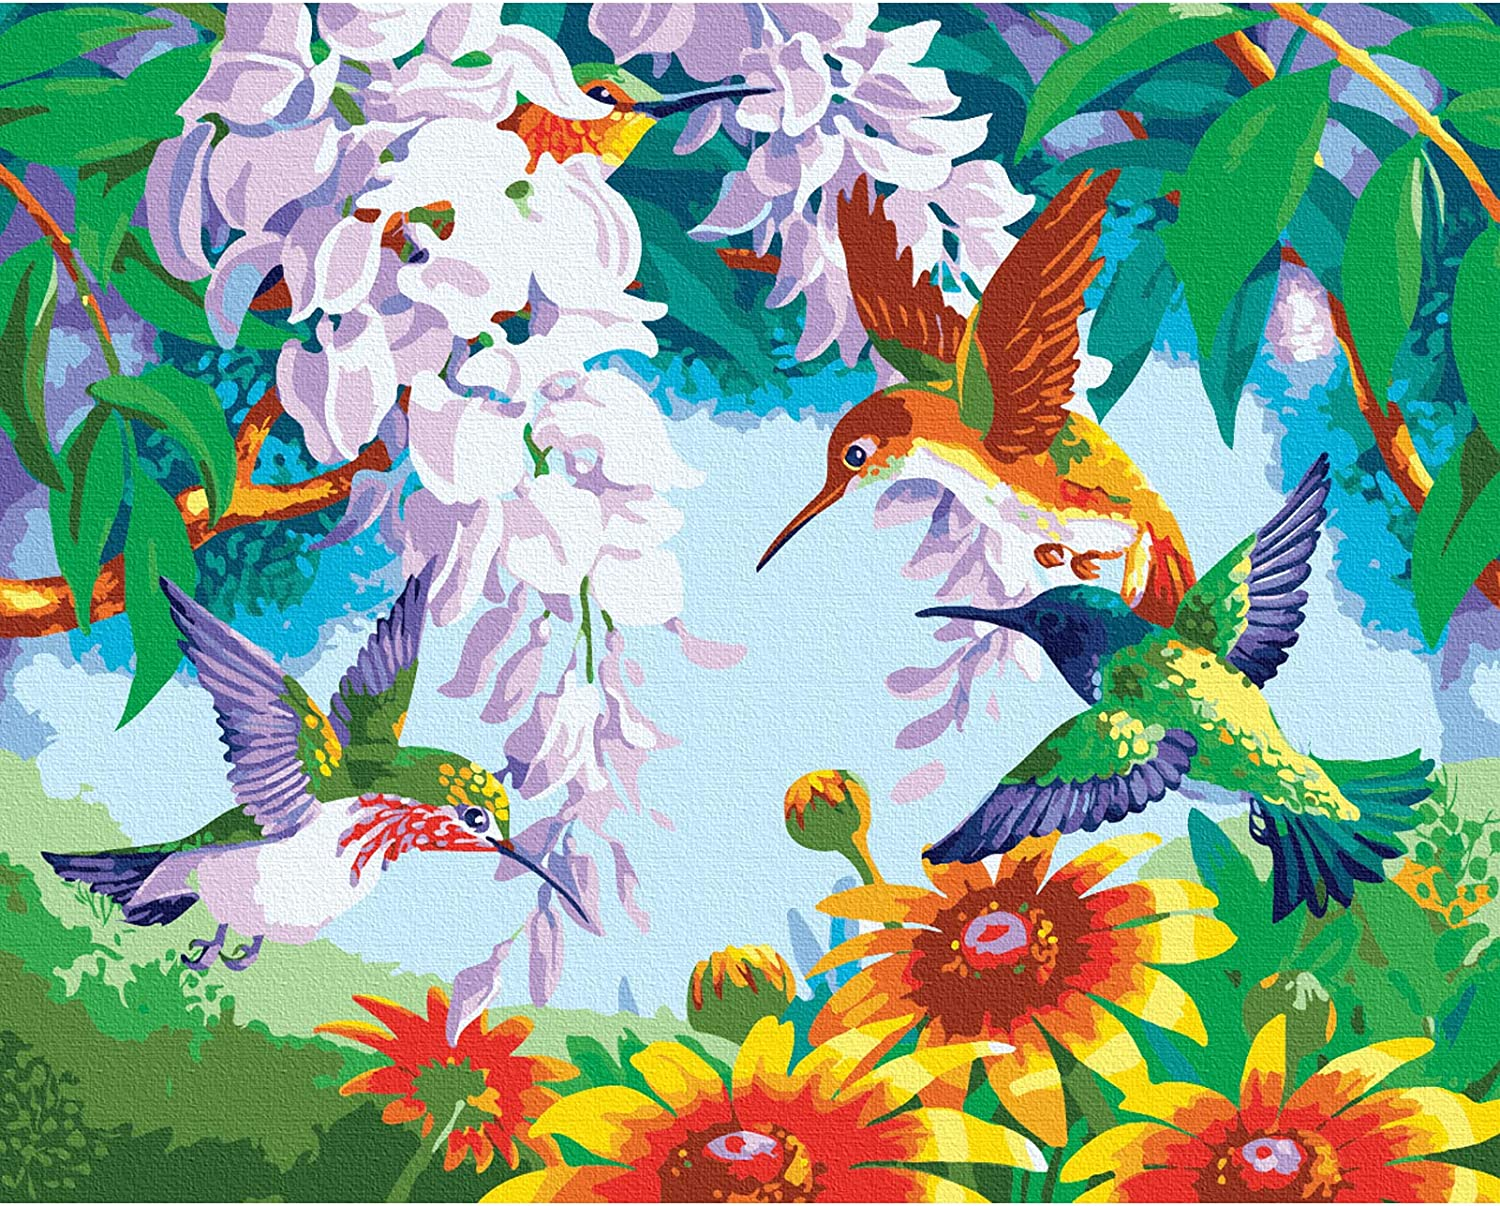 TOCARE DIY Adult Paint by Numbers Kits for Adults Kids Beginners Canvas Painting Kit Home Wall Art Decor 20x16Inch Hummingbird in Blossoms